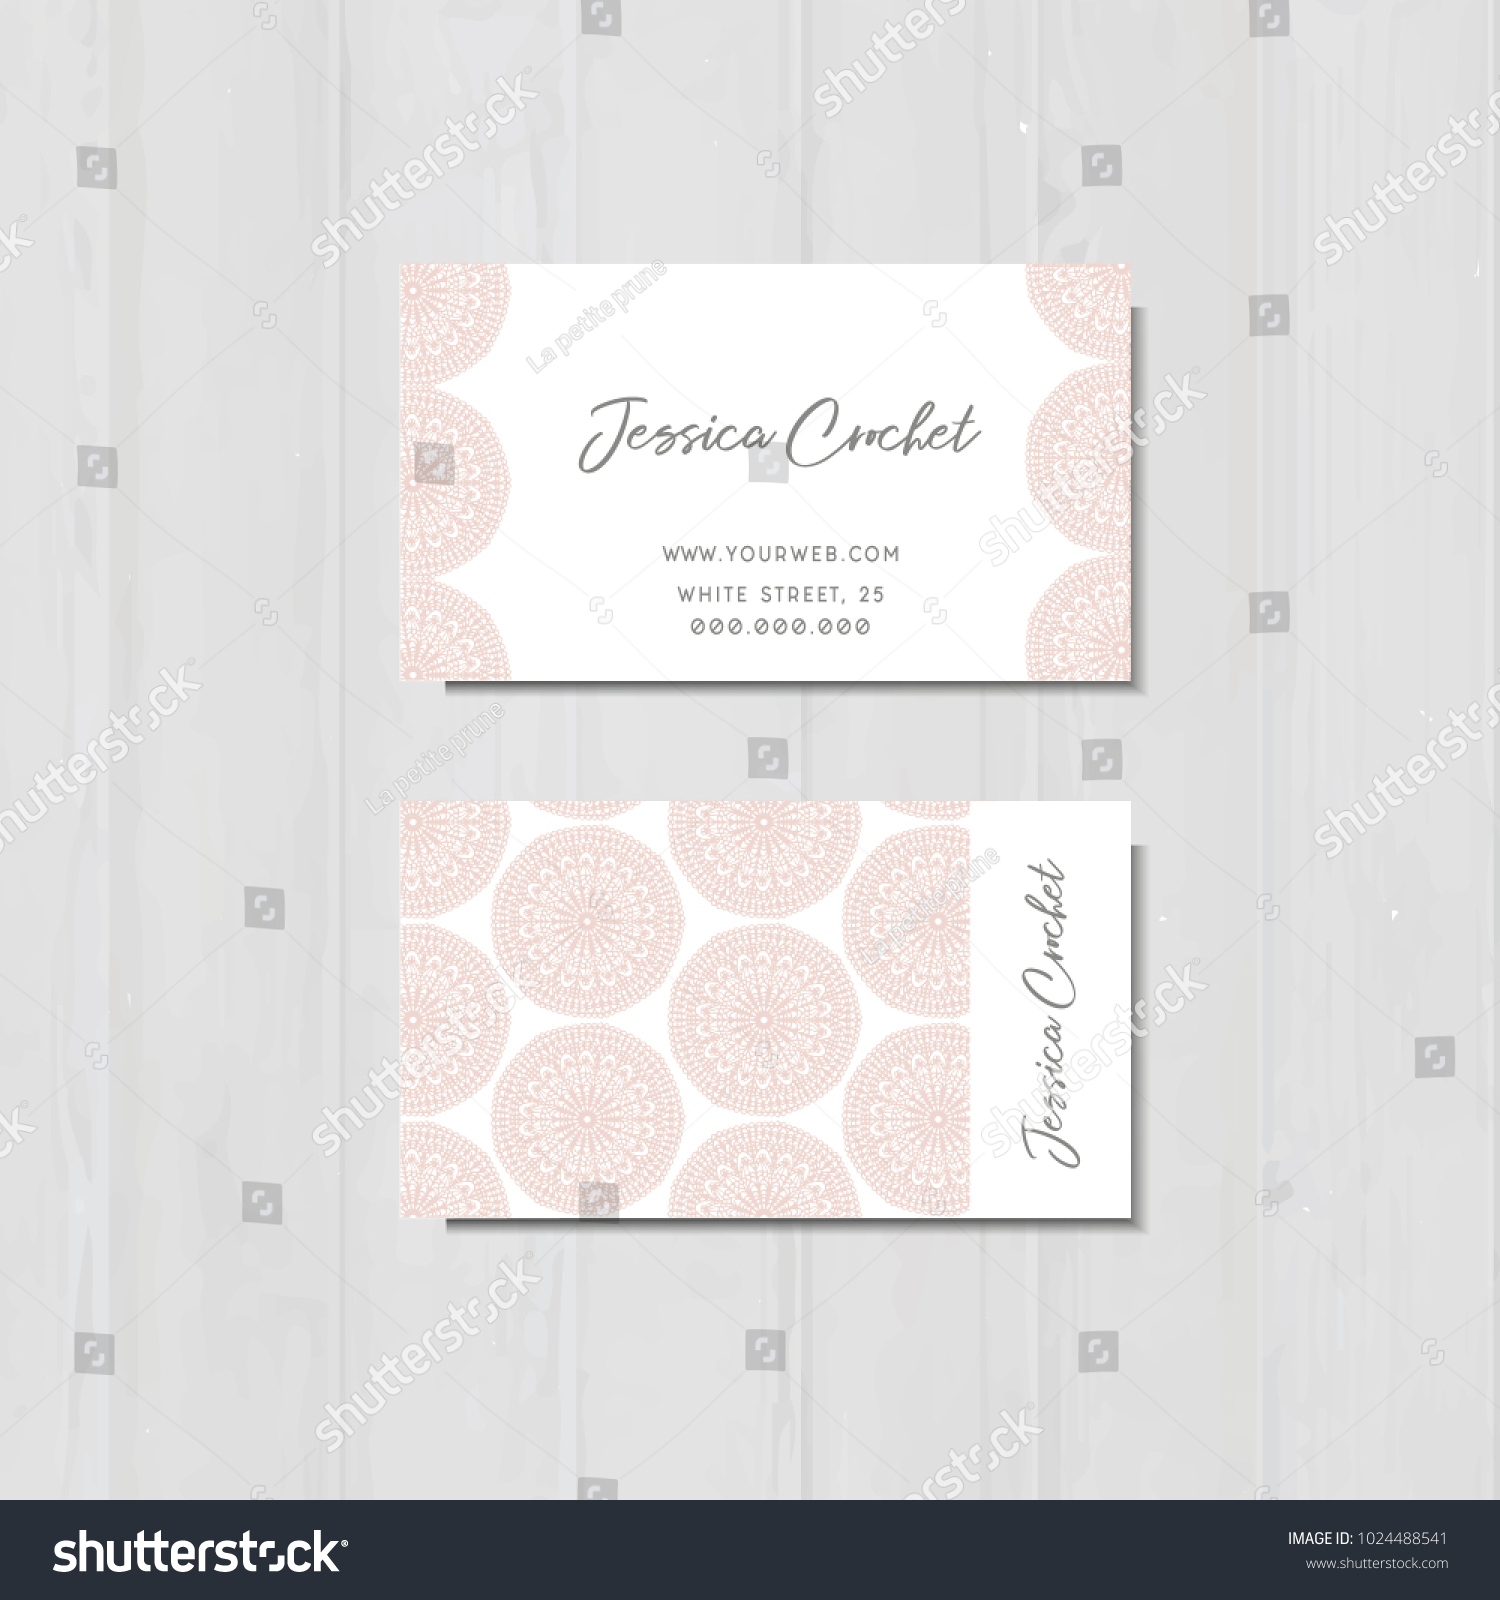 Business Card Pink Laces Handmade Crochet Stock Vector Royalty Free